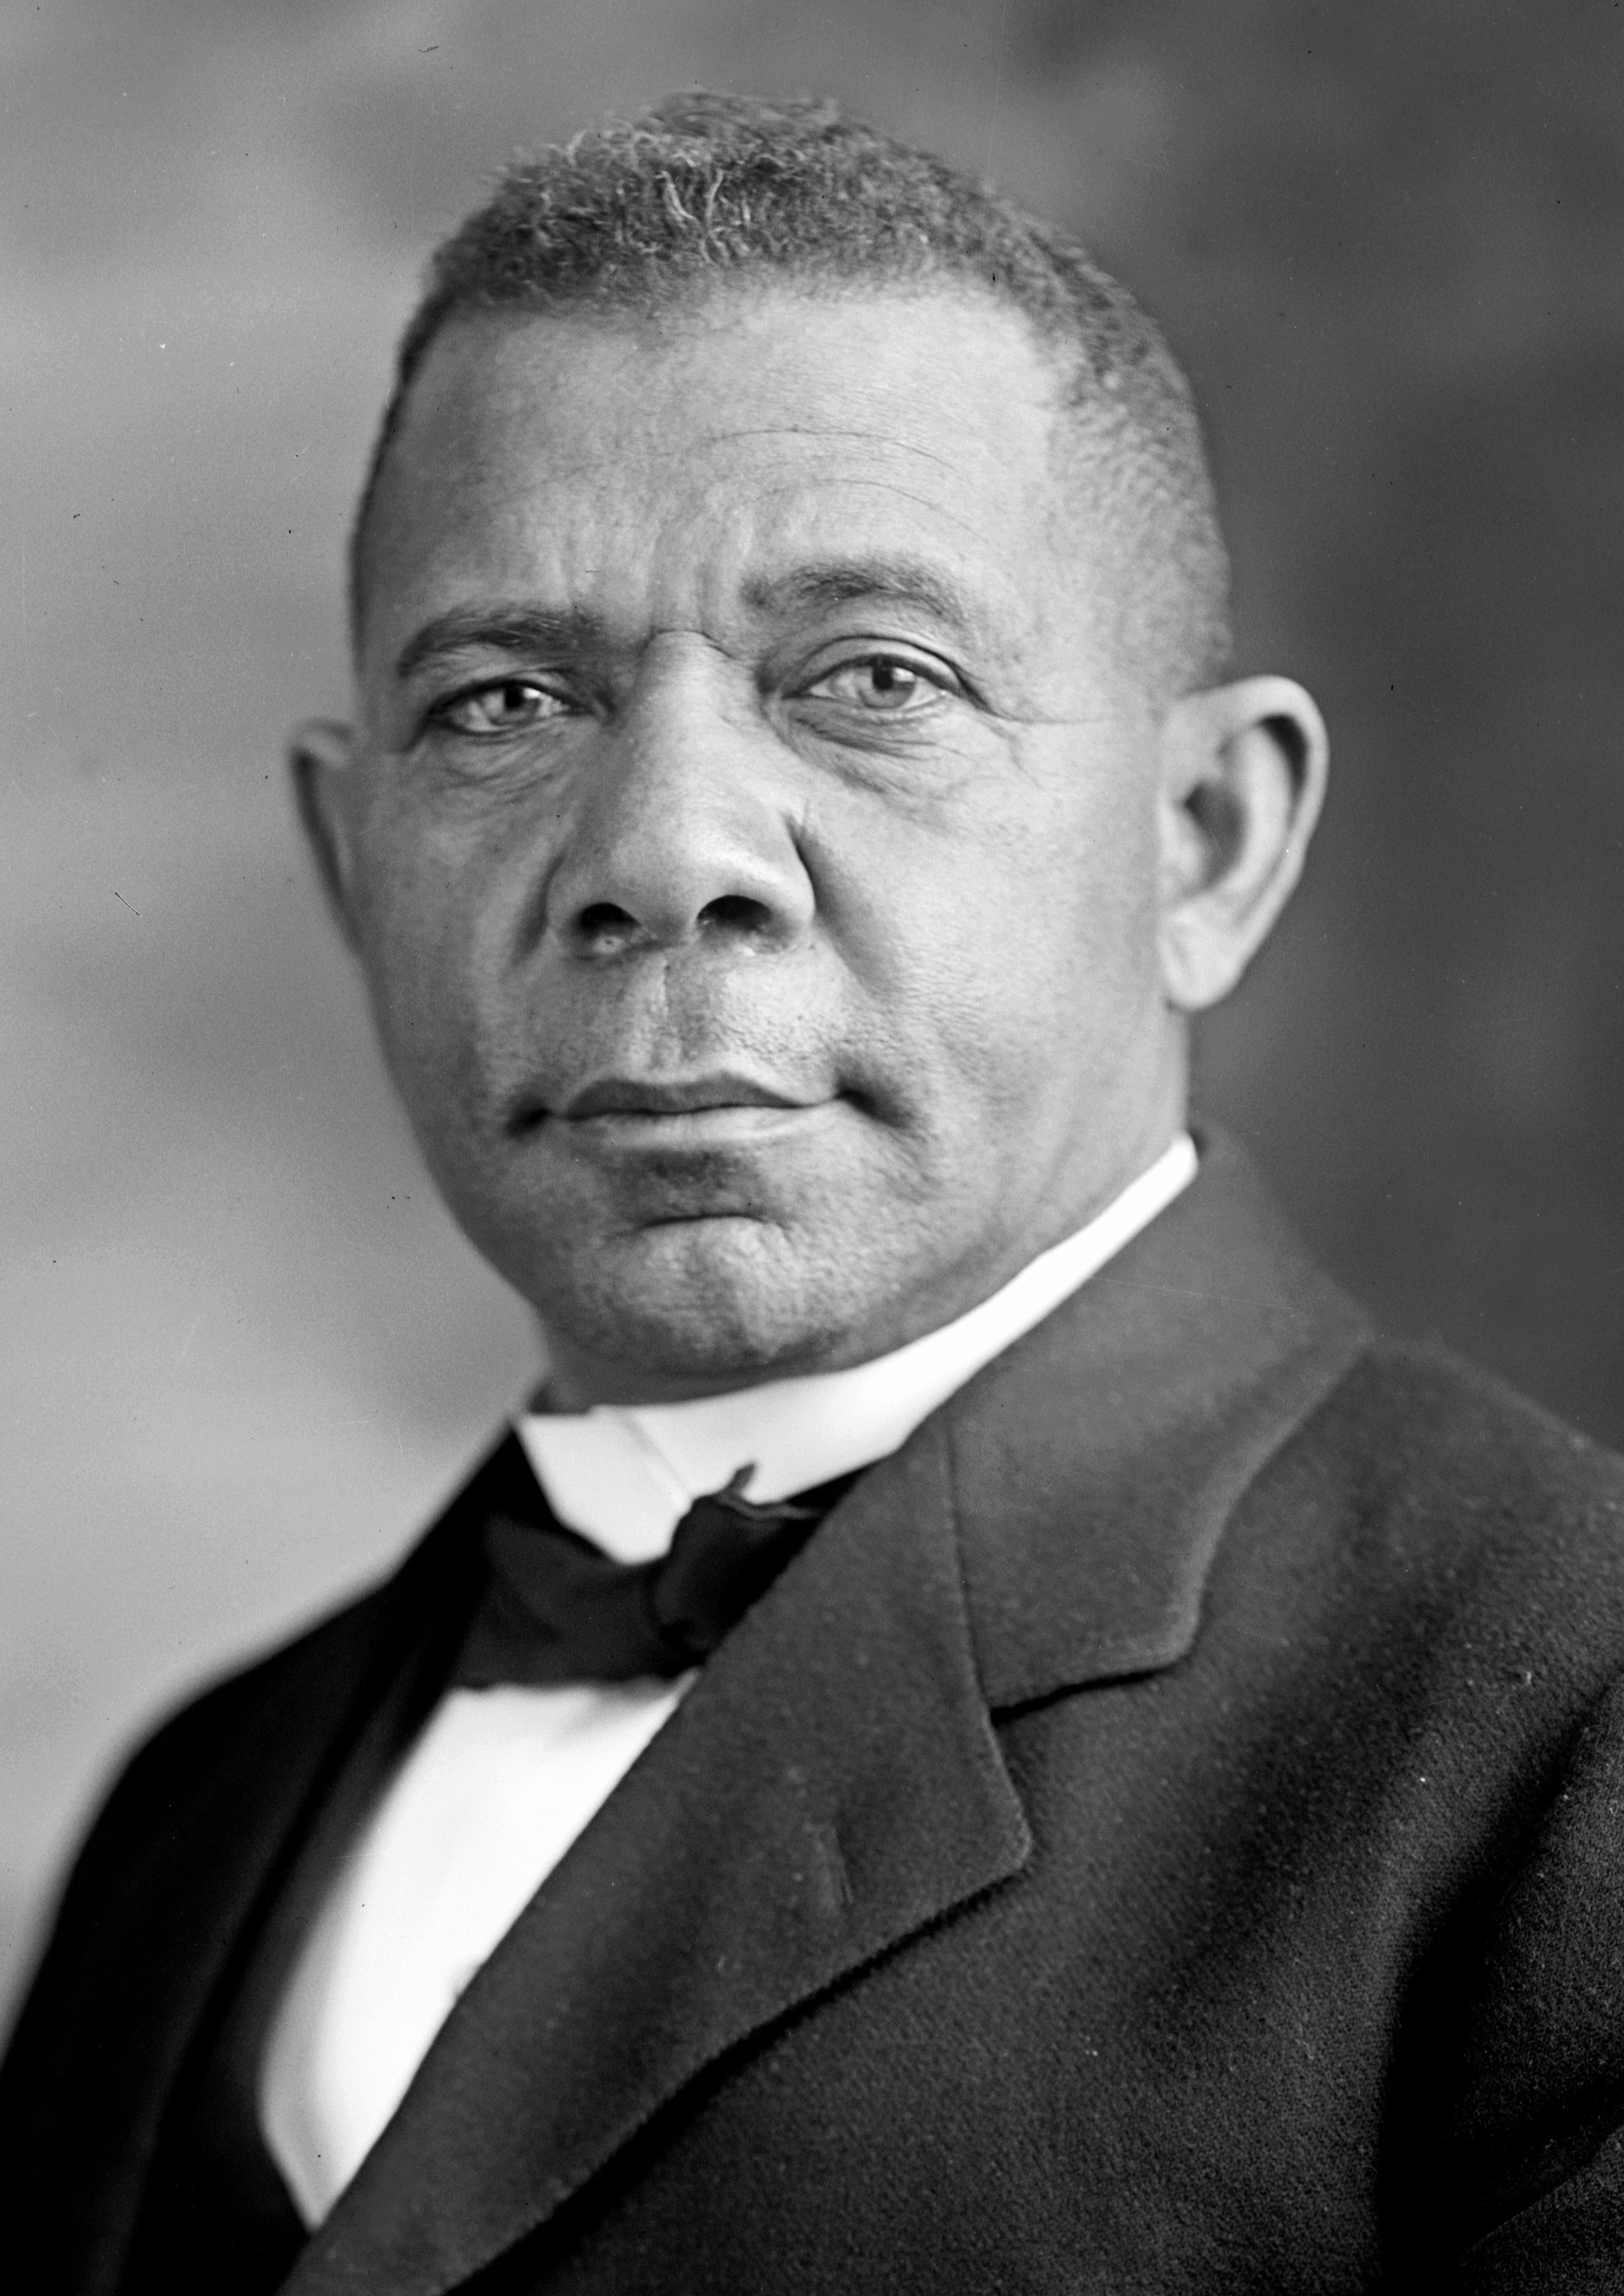 booker t. washington dinner at the white house - wikipedia